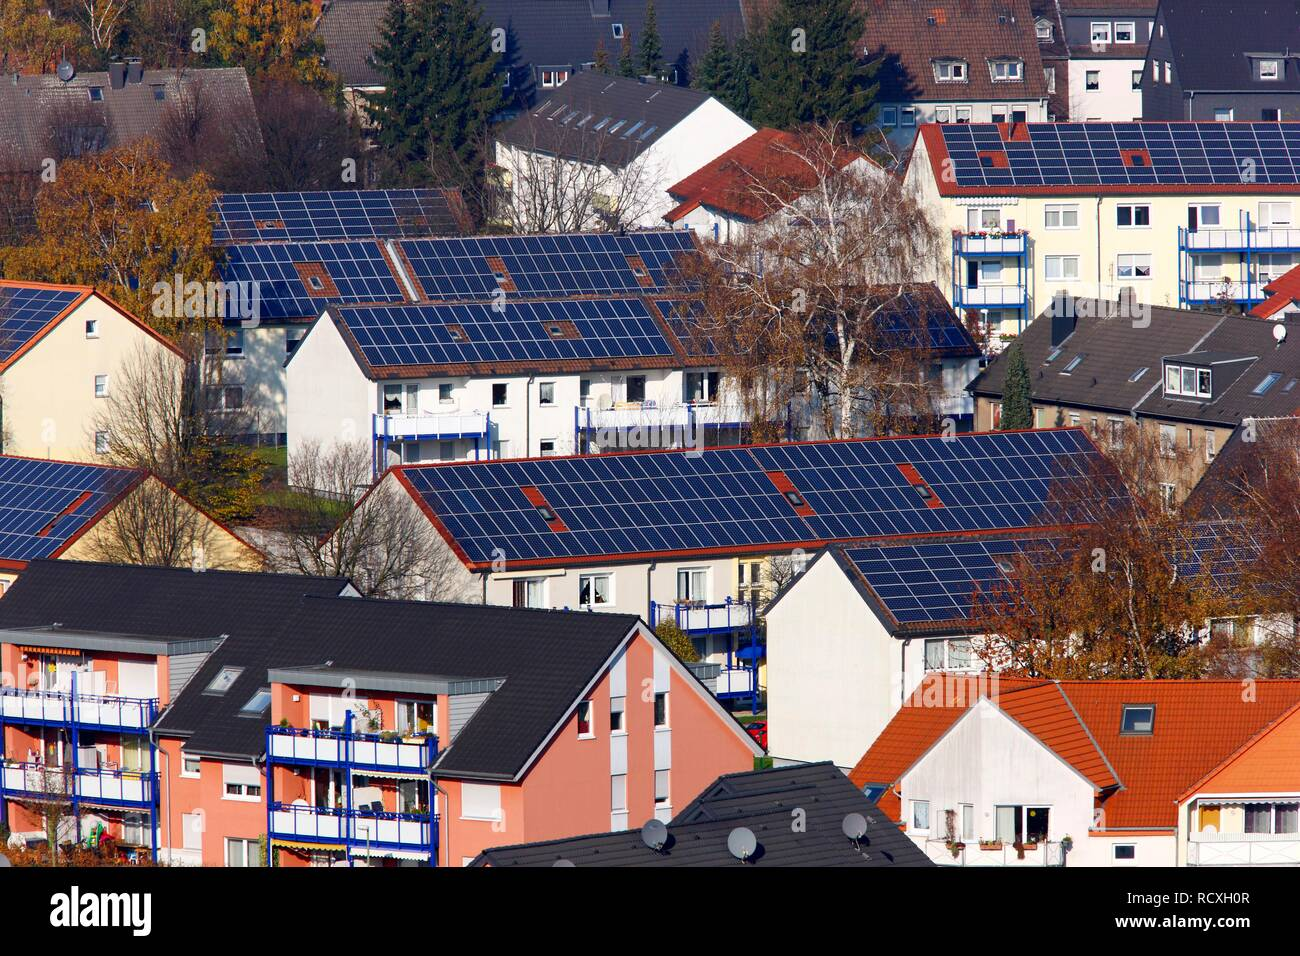 Multi-family houses, photovoltaic systems, solar systems on many roofs of the residential area, Bottrop, North Rhine-Westphalia - Stock Image